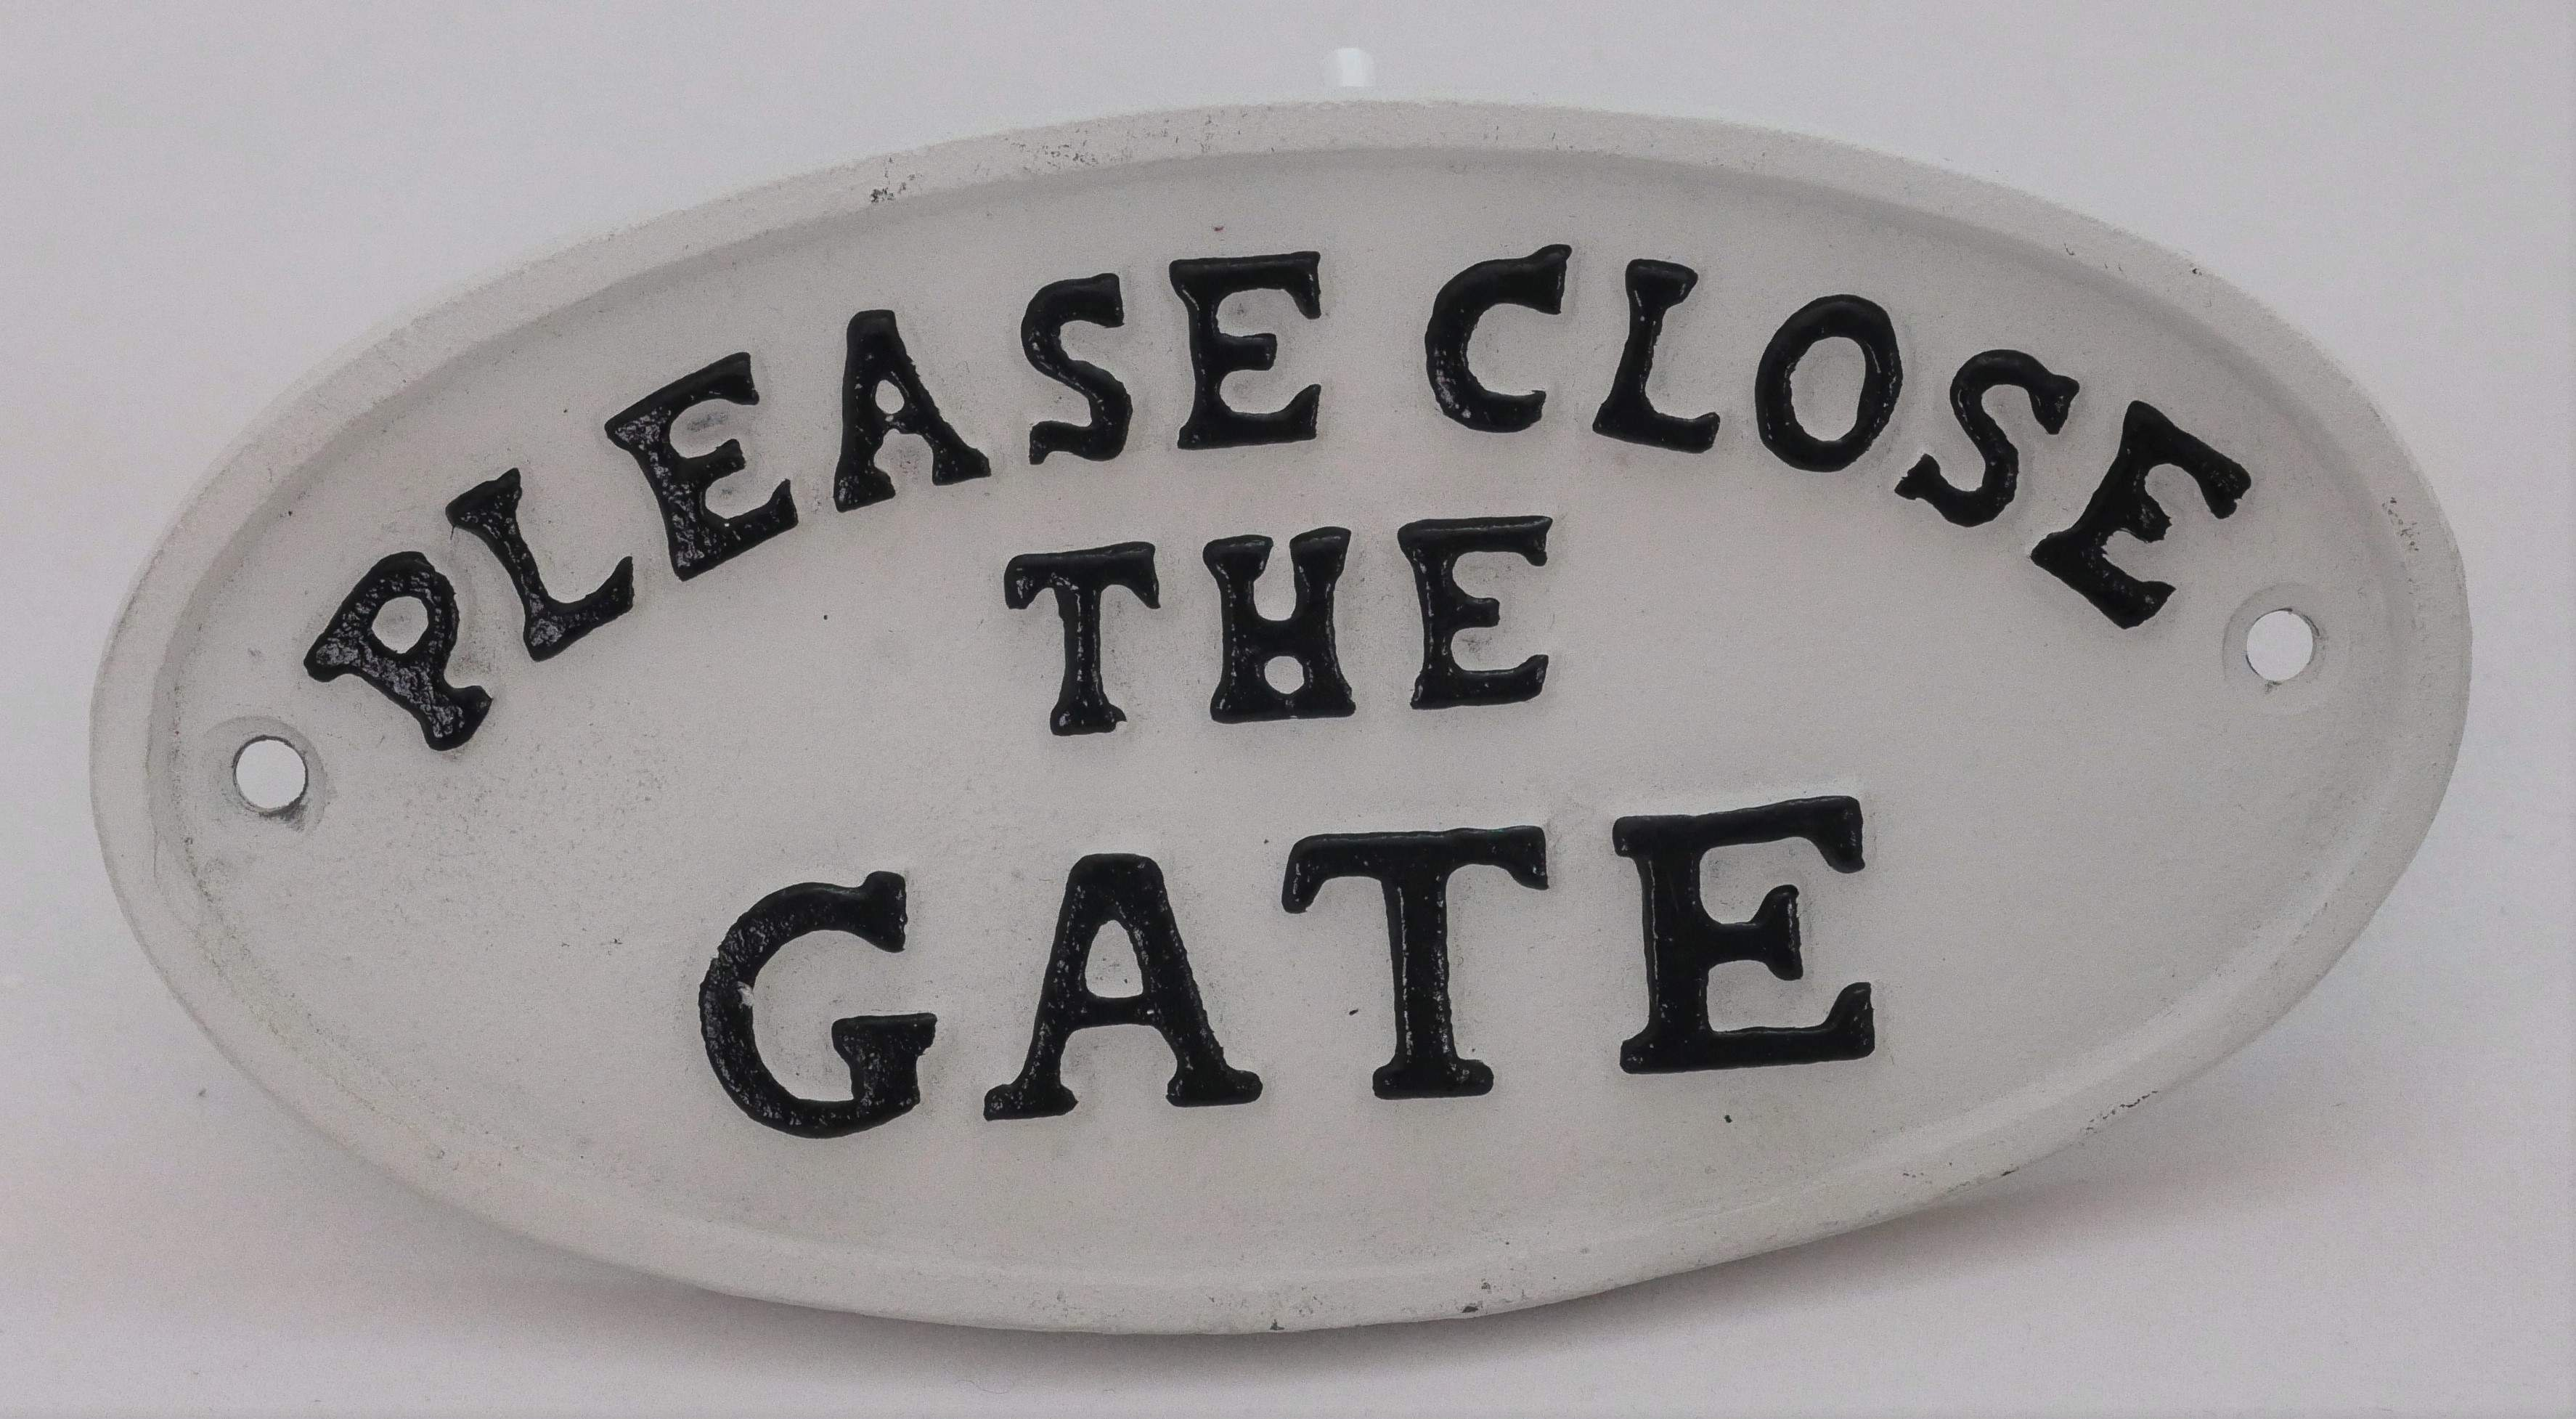 Please Close The Gate cast iron wall plaque.